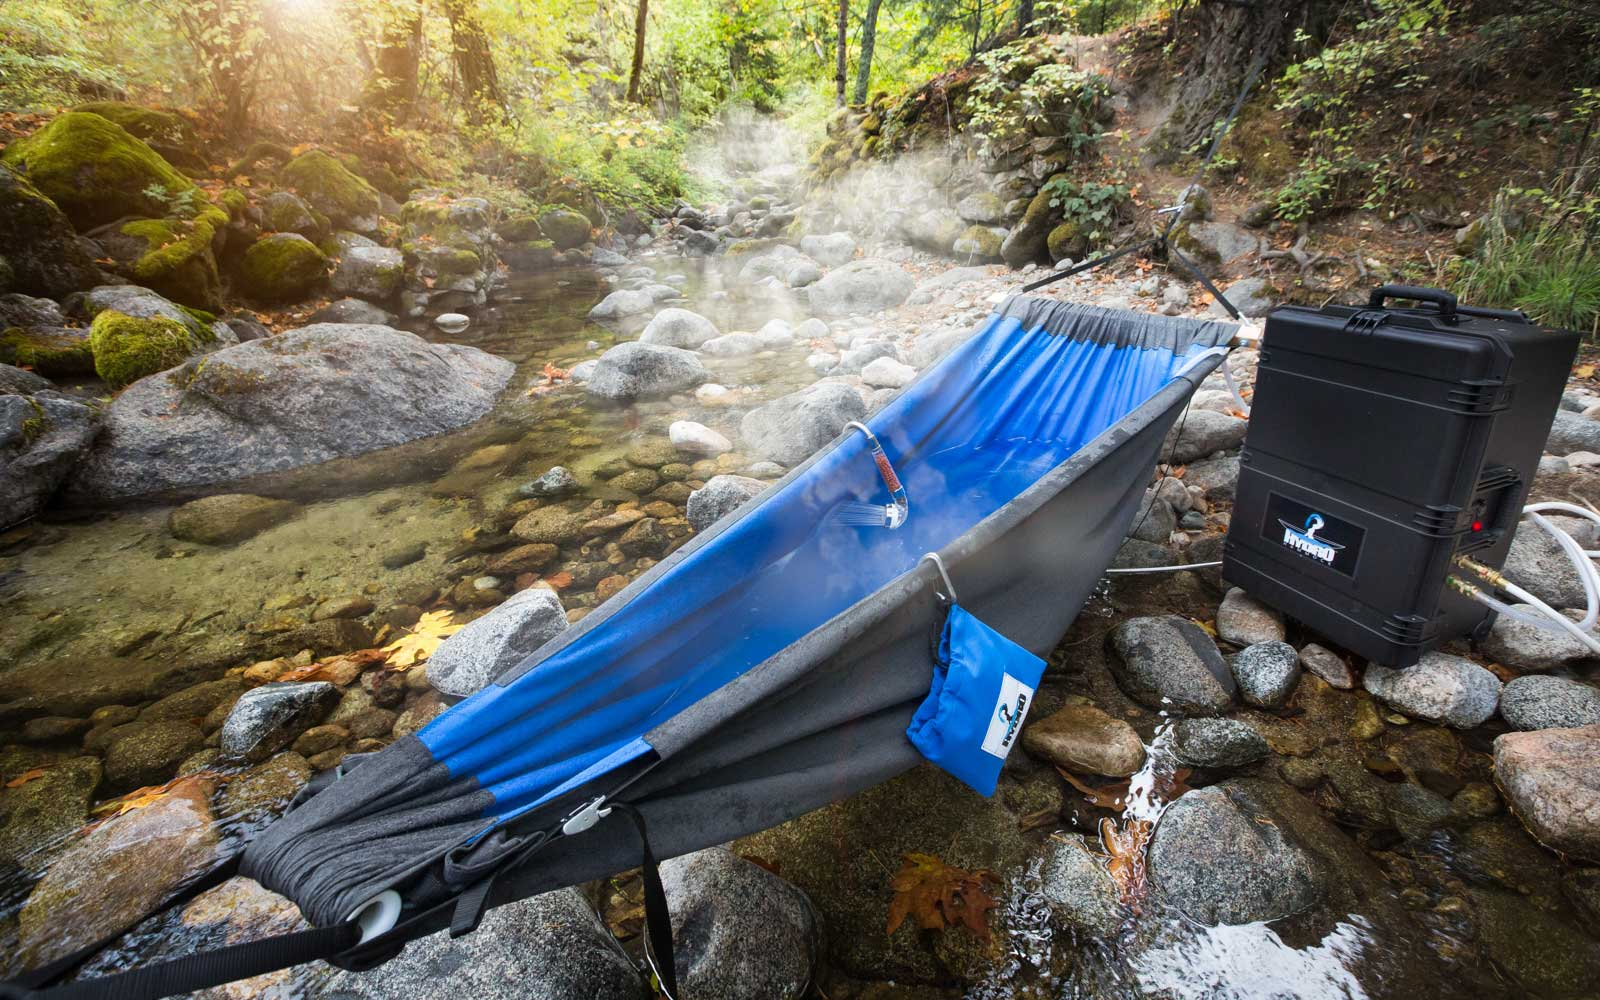 You can make your own private hot tub in minutes with this crazy hammock